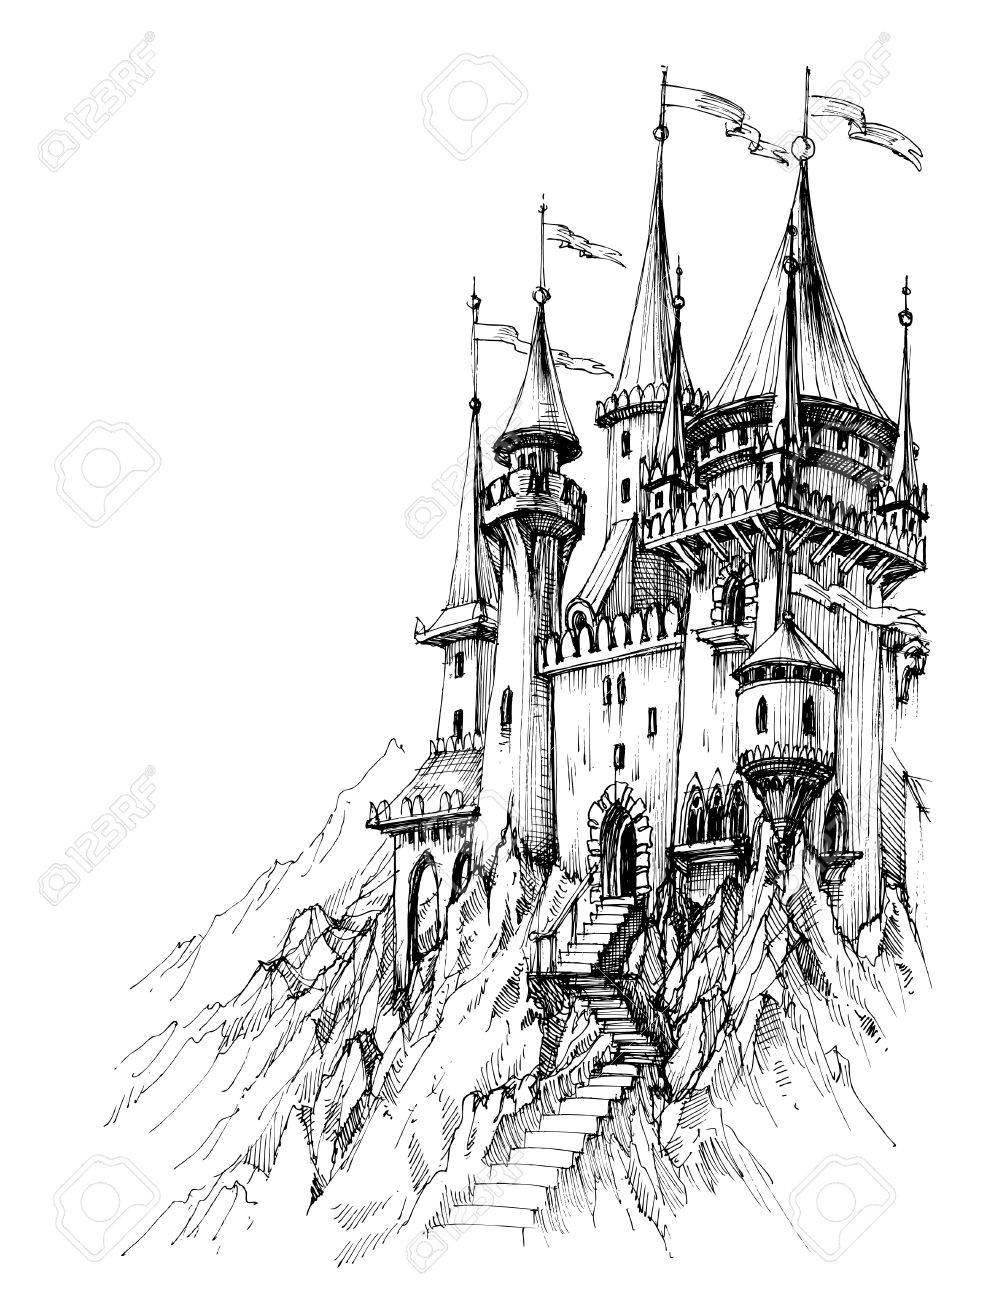 A fairytale castle in mountains - 51327209